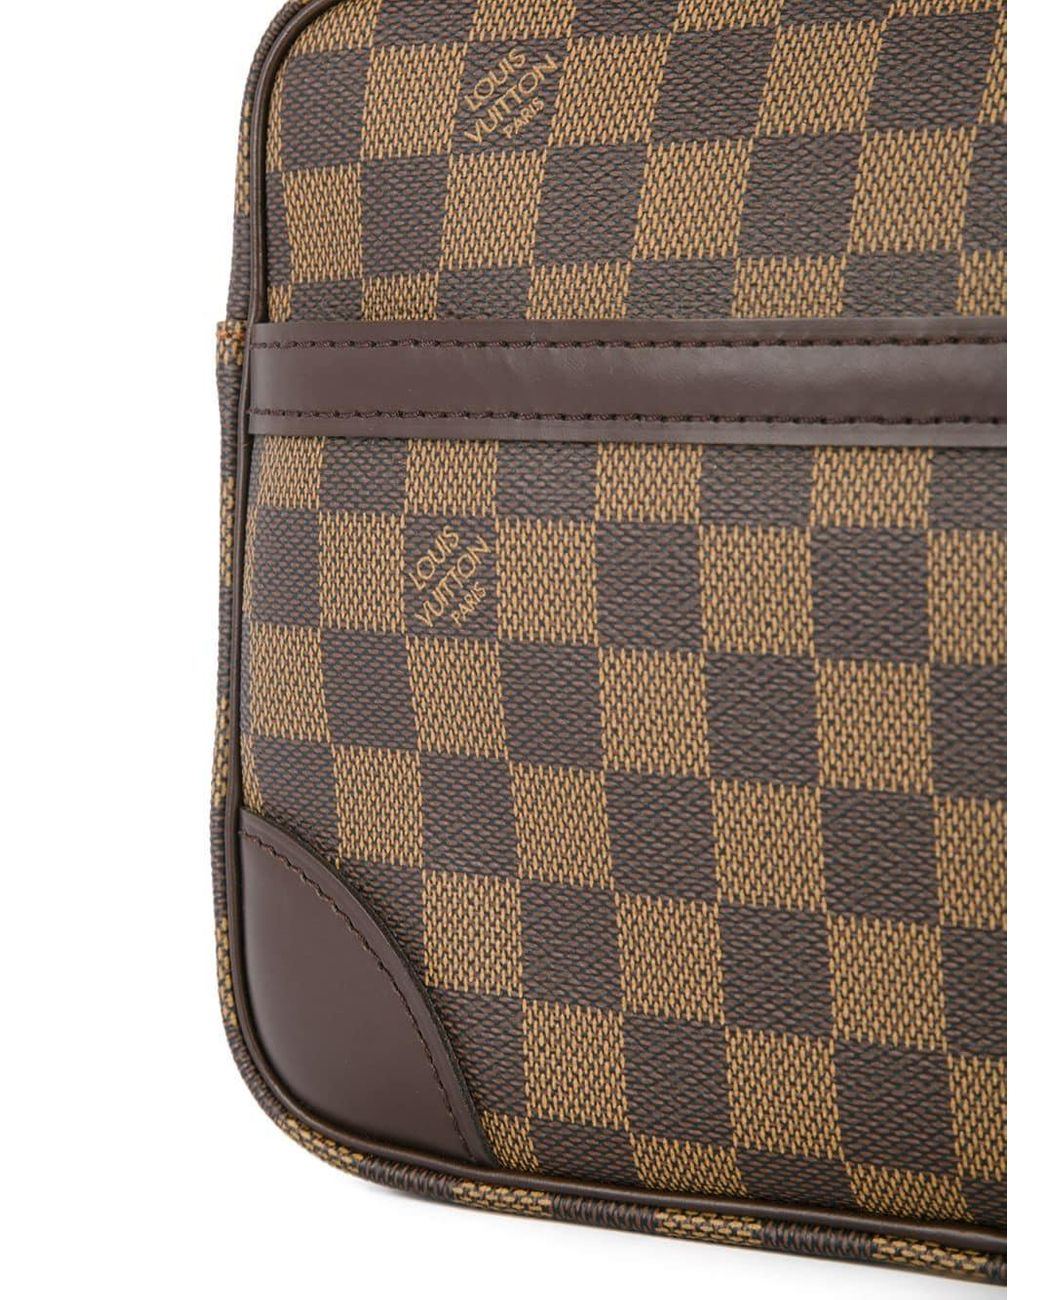 785dd810a46 Louis Vuitton Pre-Owned Trocadero Shoulder Bag in Brown - Lyst